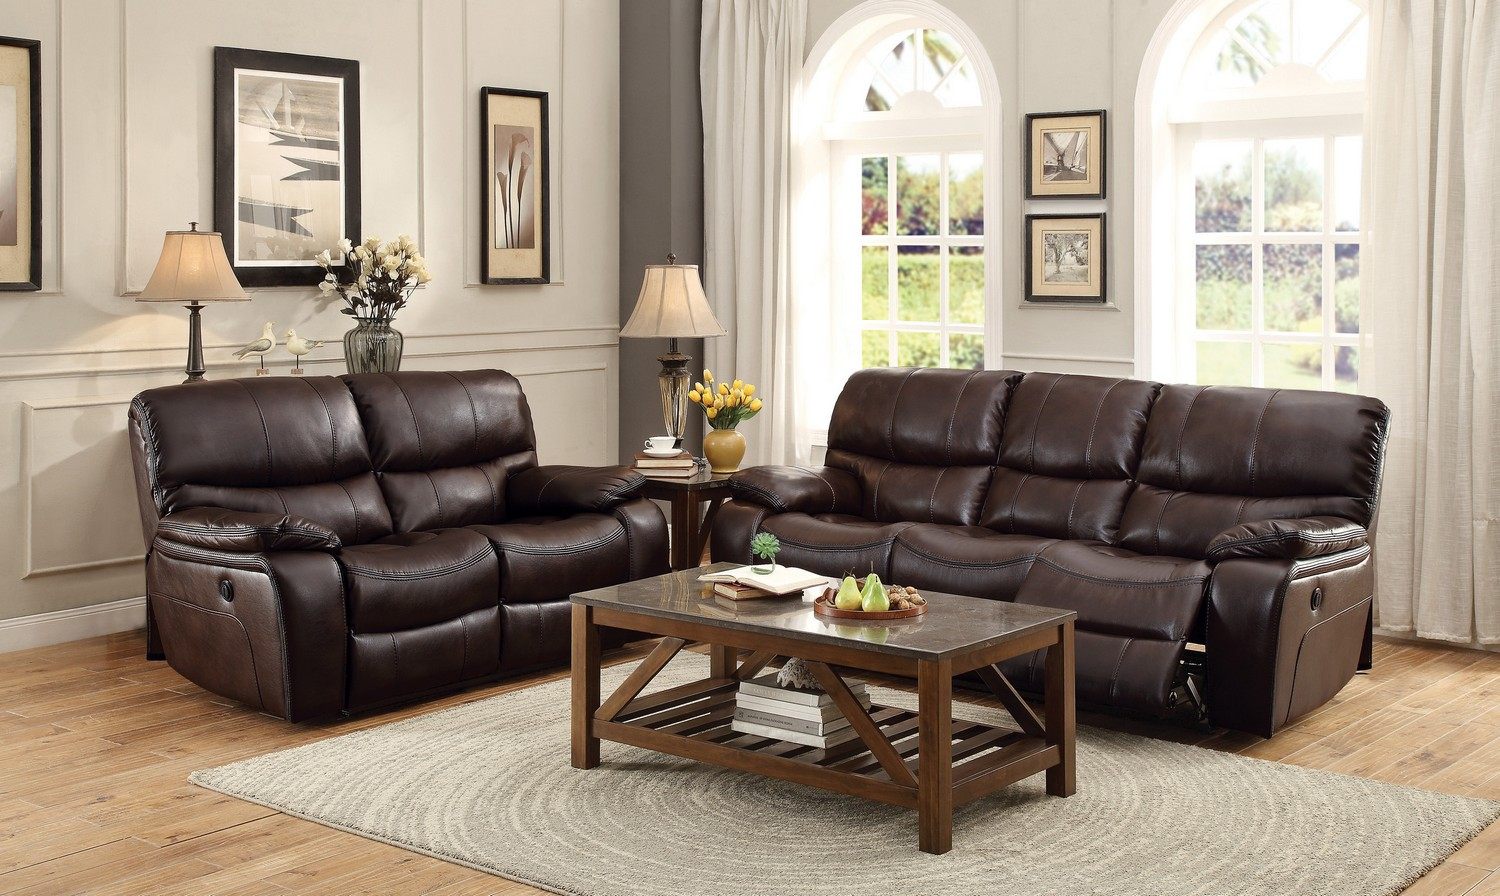 Homelegance Pecos Power Reclining Sofa Set - Leather Gel Match - Dark Brown